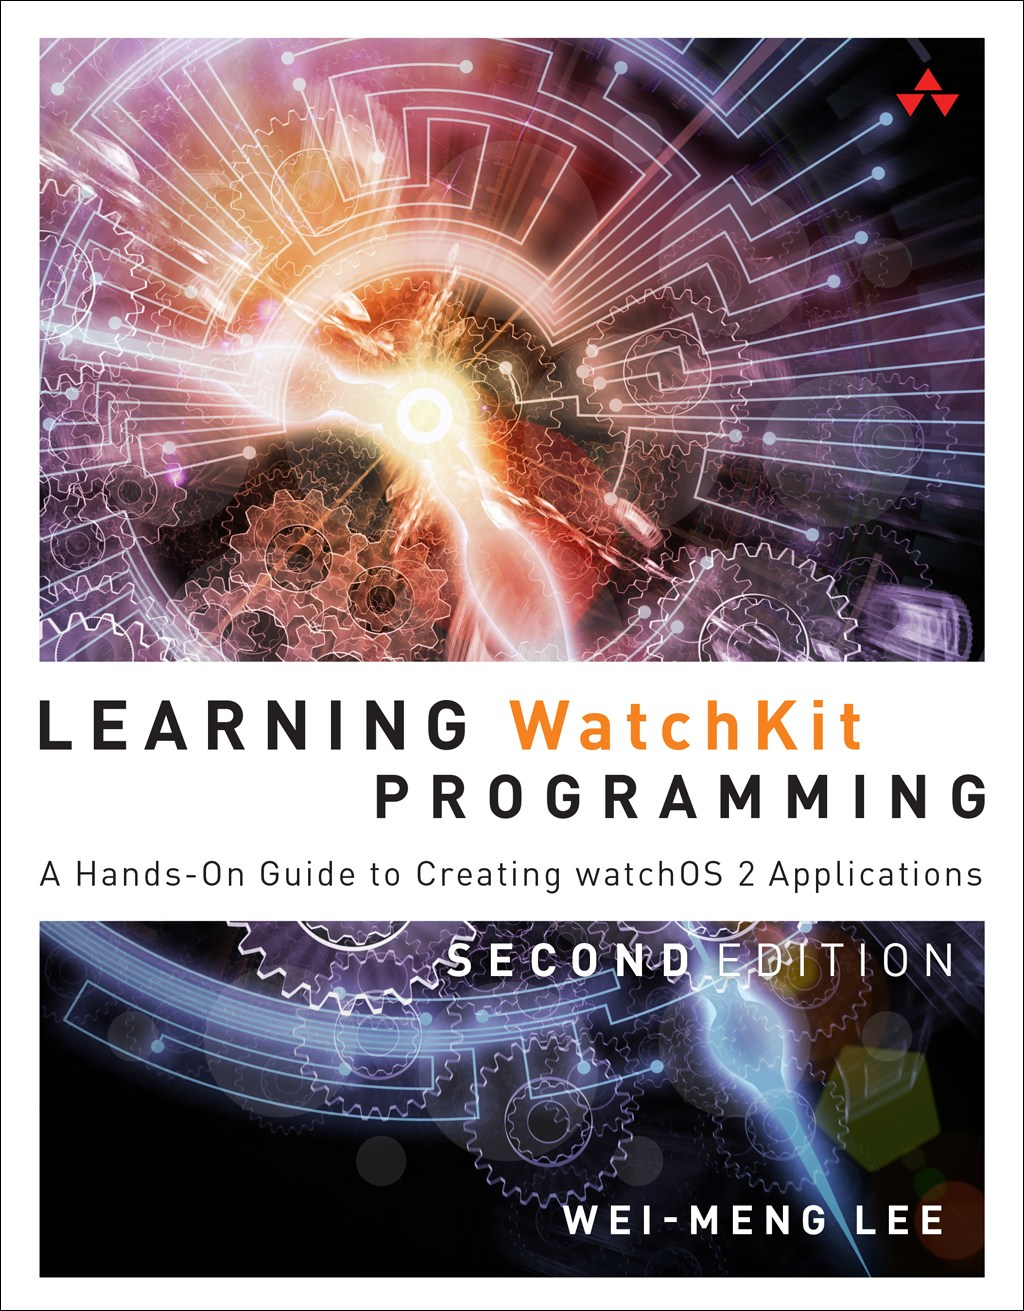 Learning WatchKit Programming: A Hands-On Guide to Creating watchOS 2 Applications